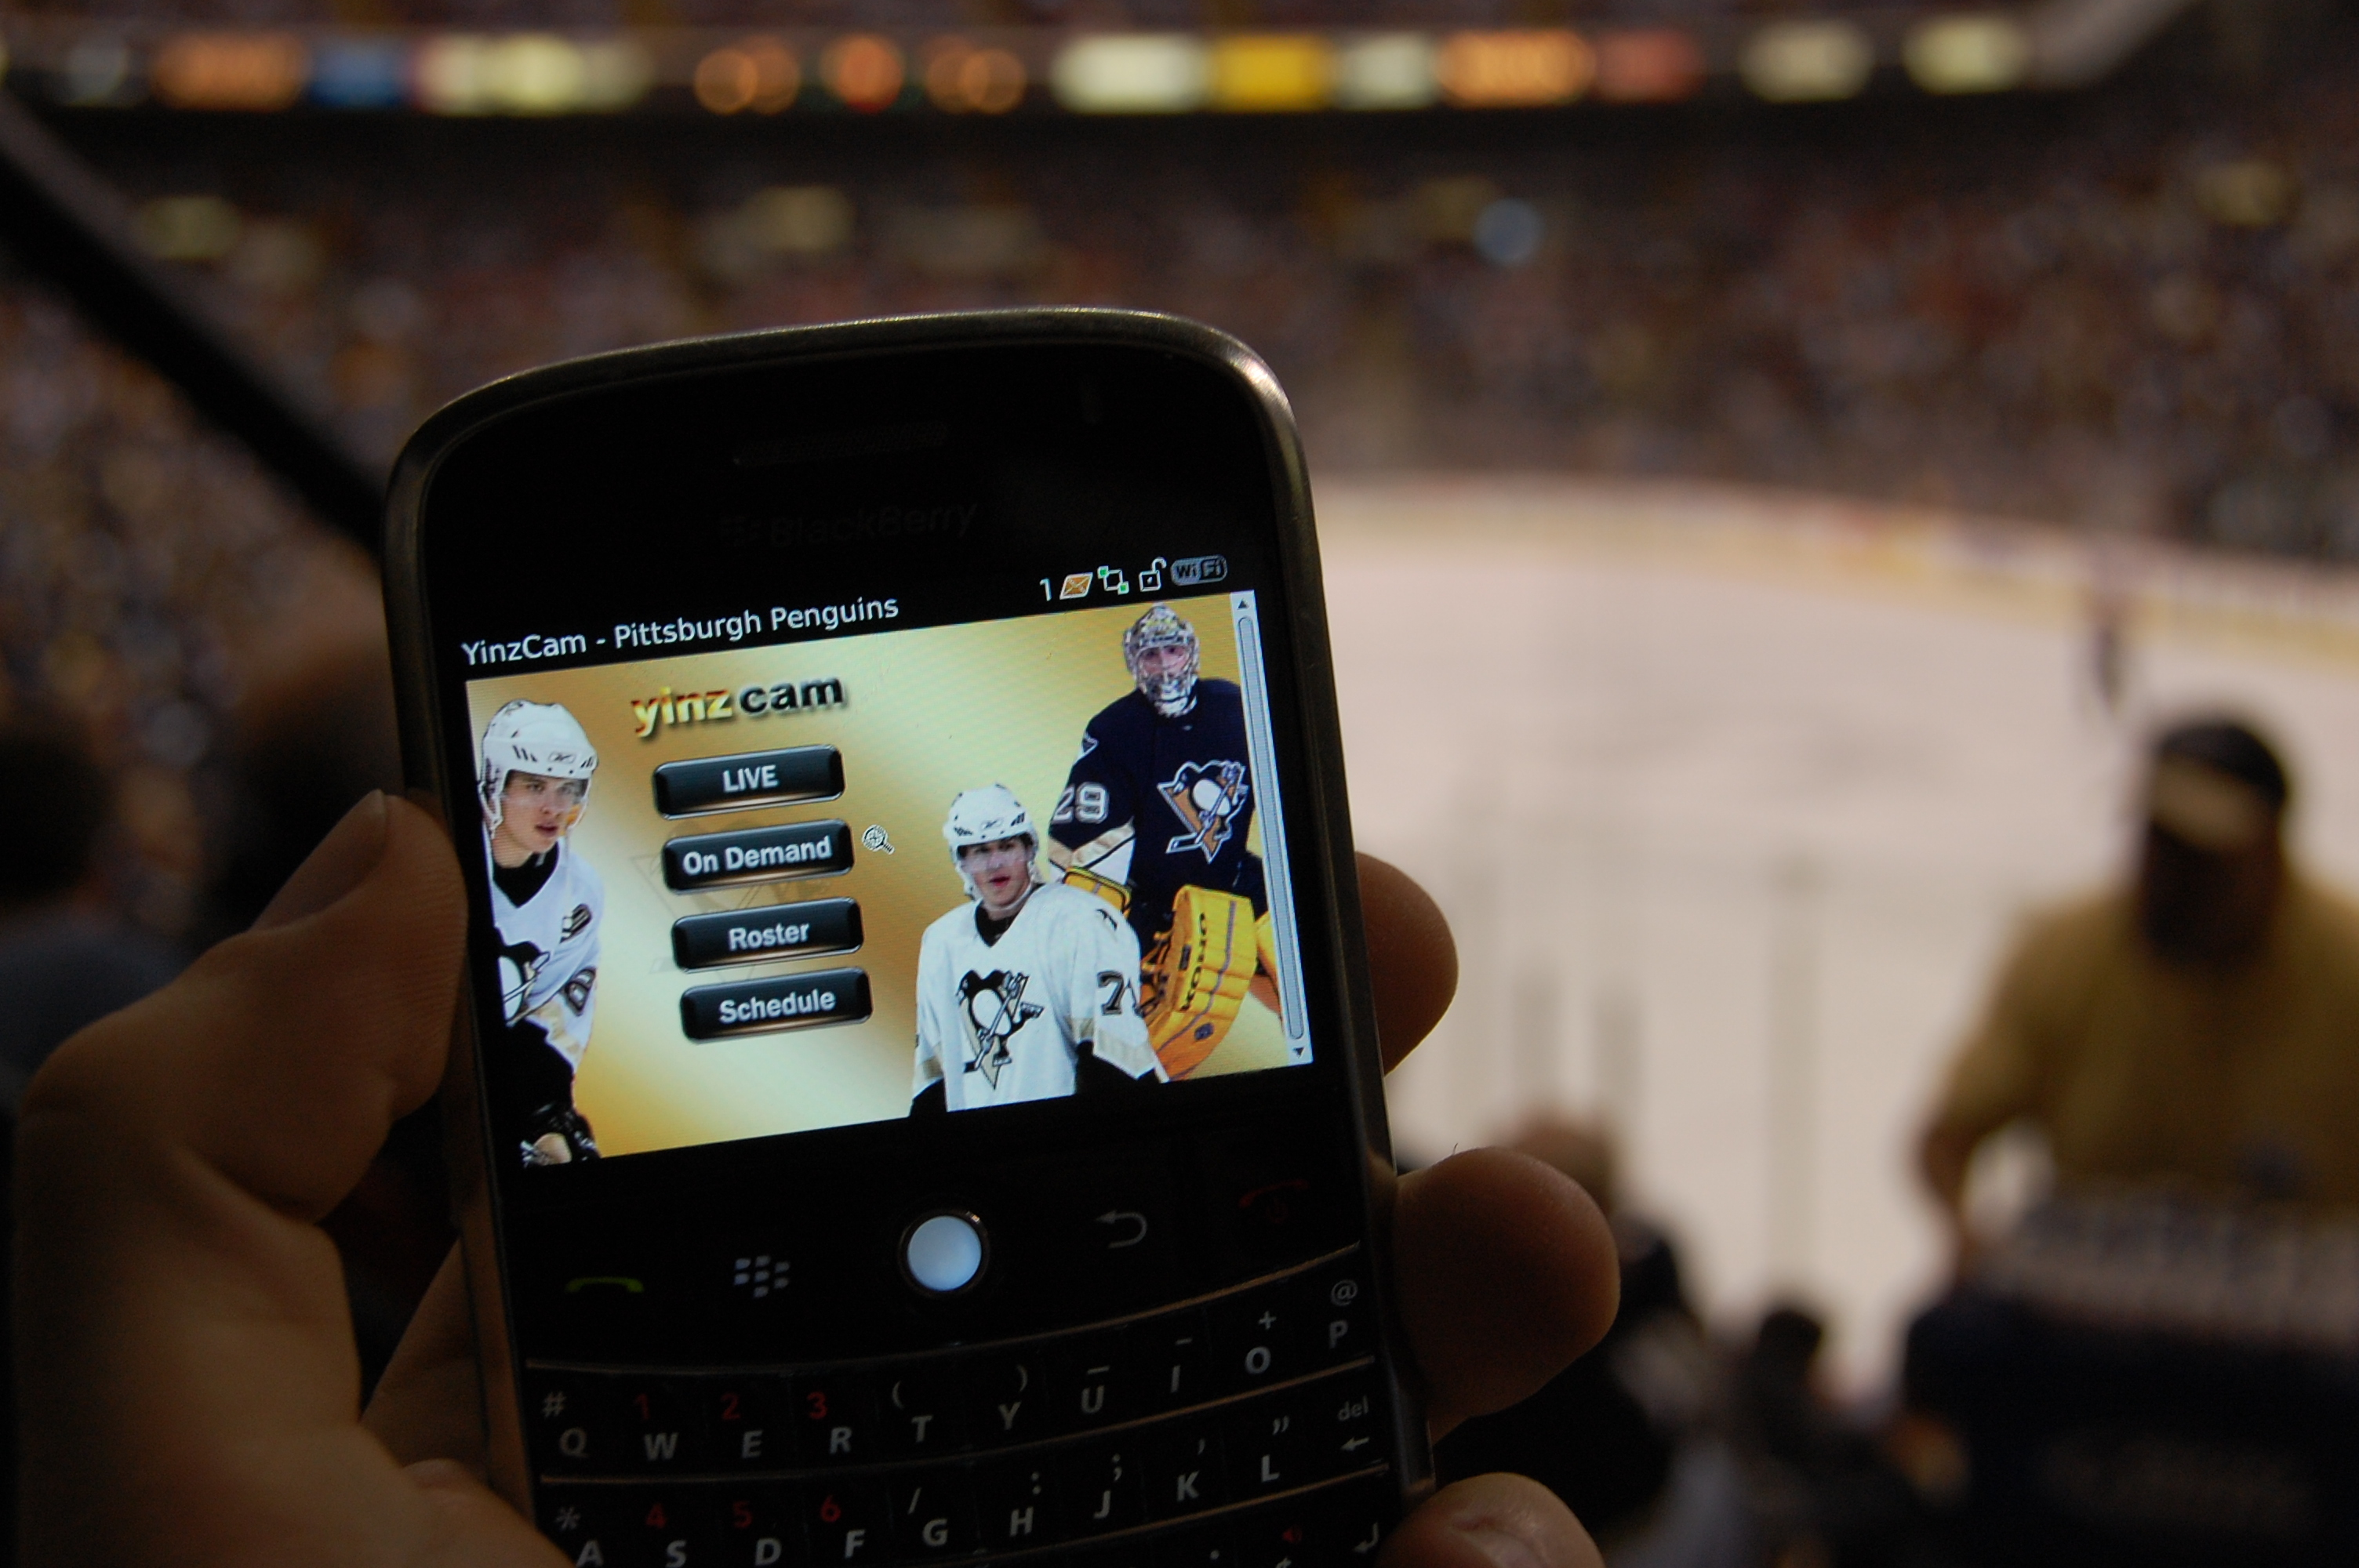 The Yinz Cam allows viewers a close up view of Penquins games at the Mellon Arena via their cell phones.   (credit: Courtesy of Priya Narasimhan)